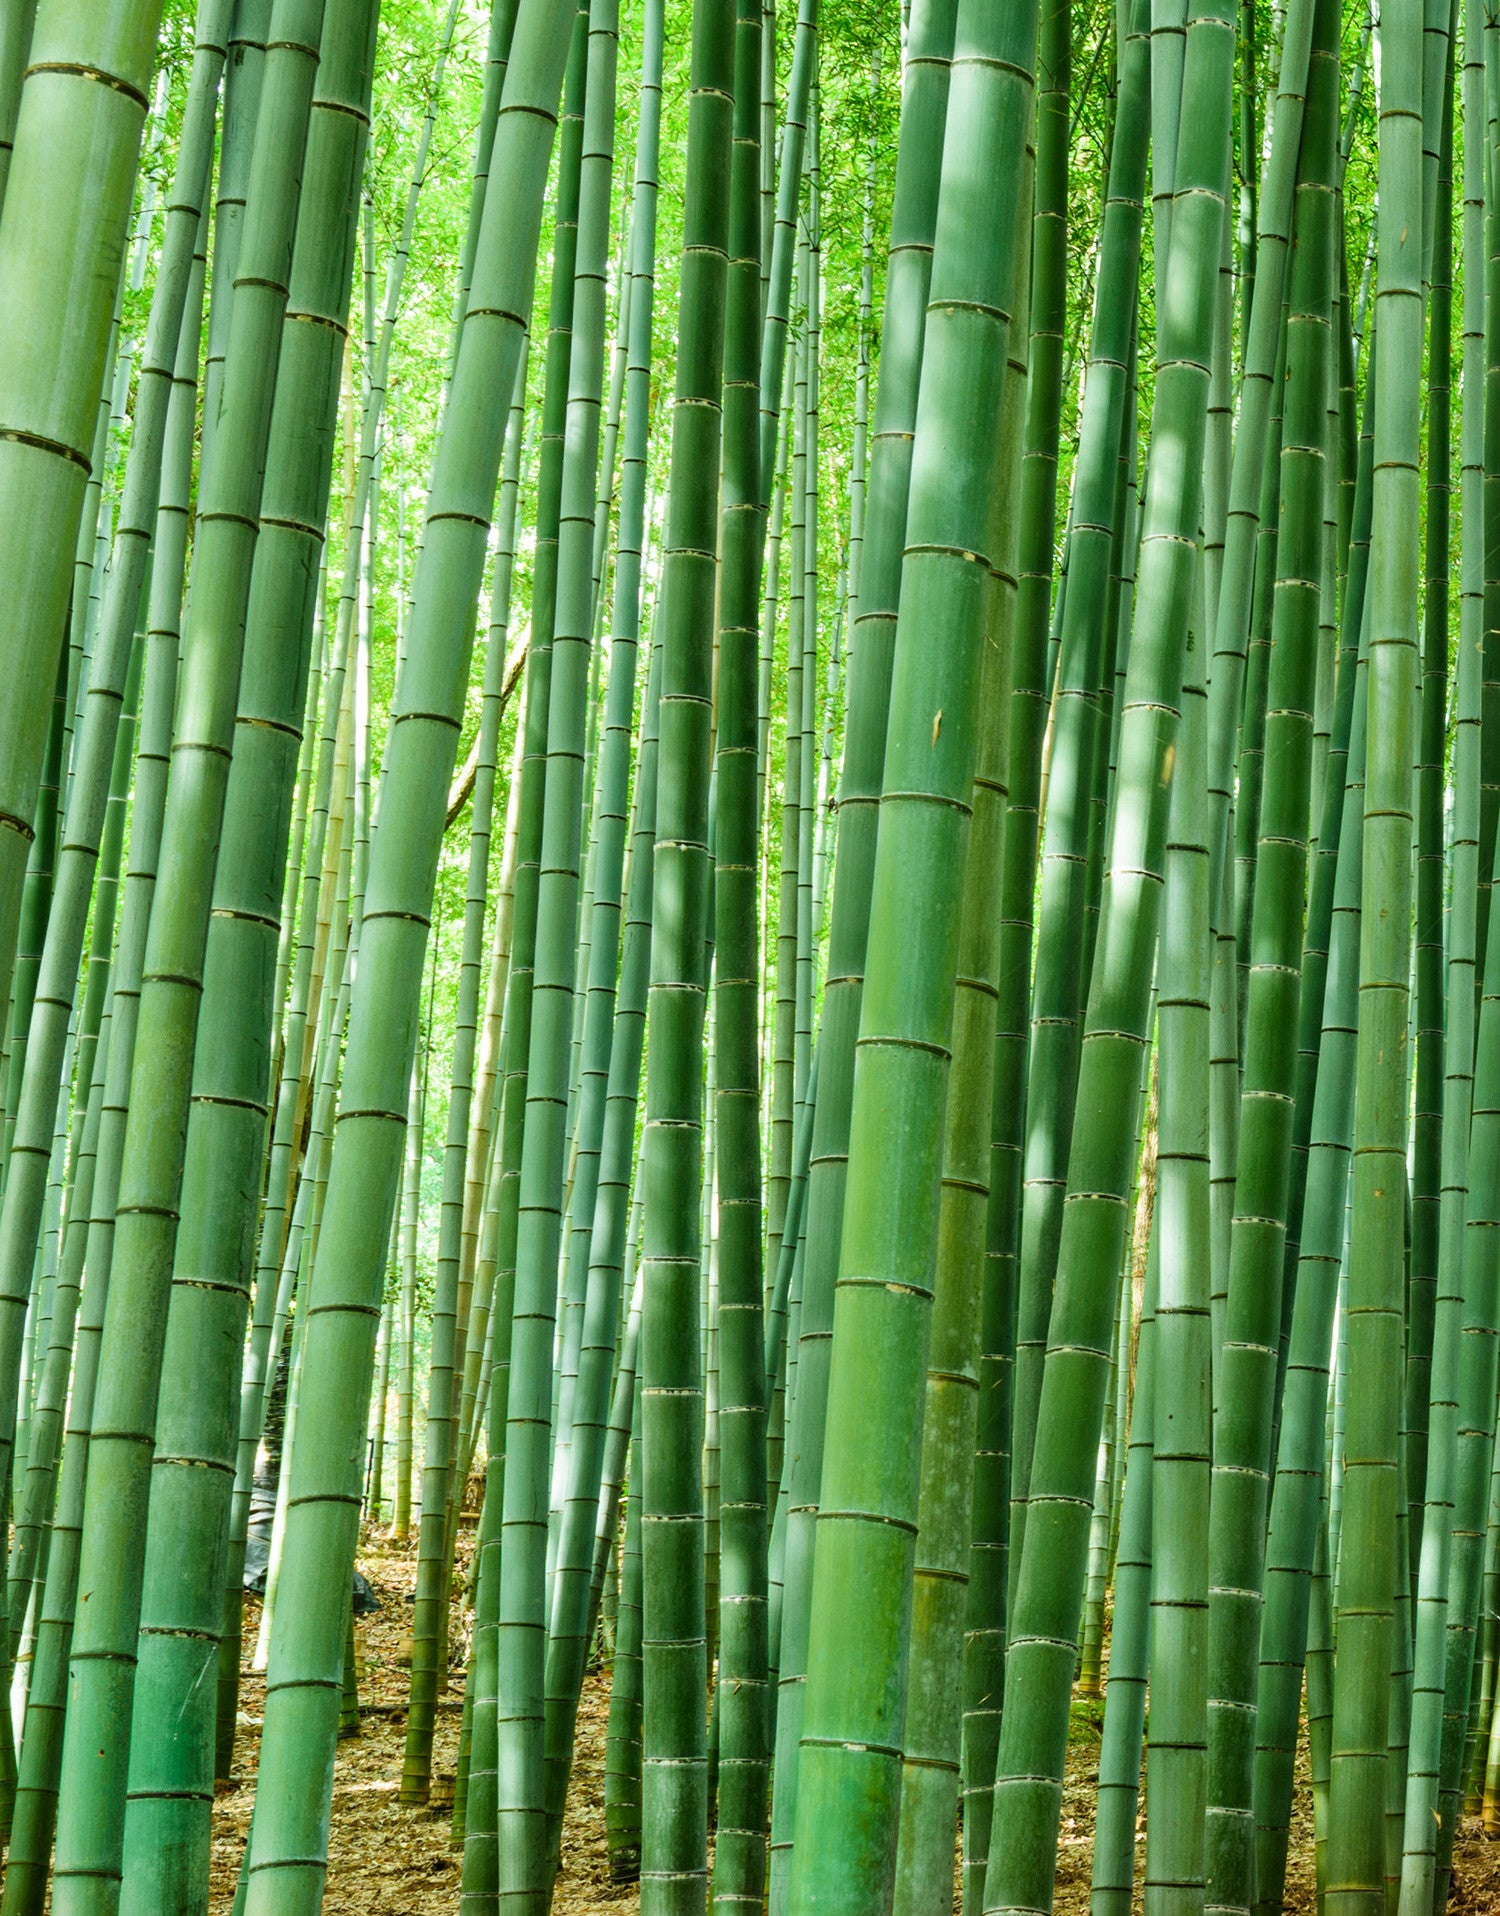 Bamboo forest wall mural 6043 for Bamboo wall mural